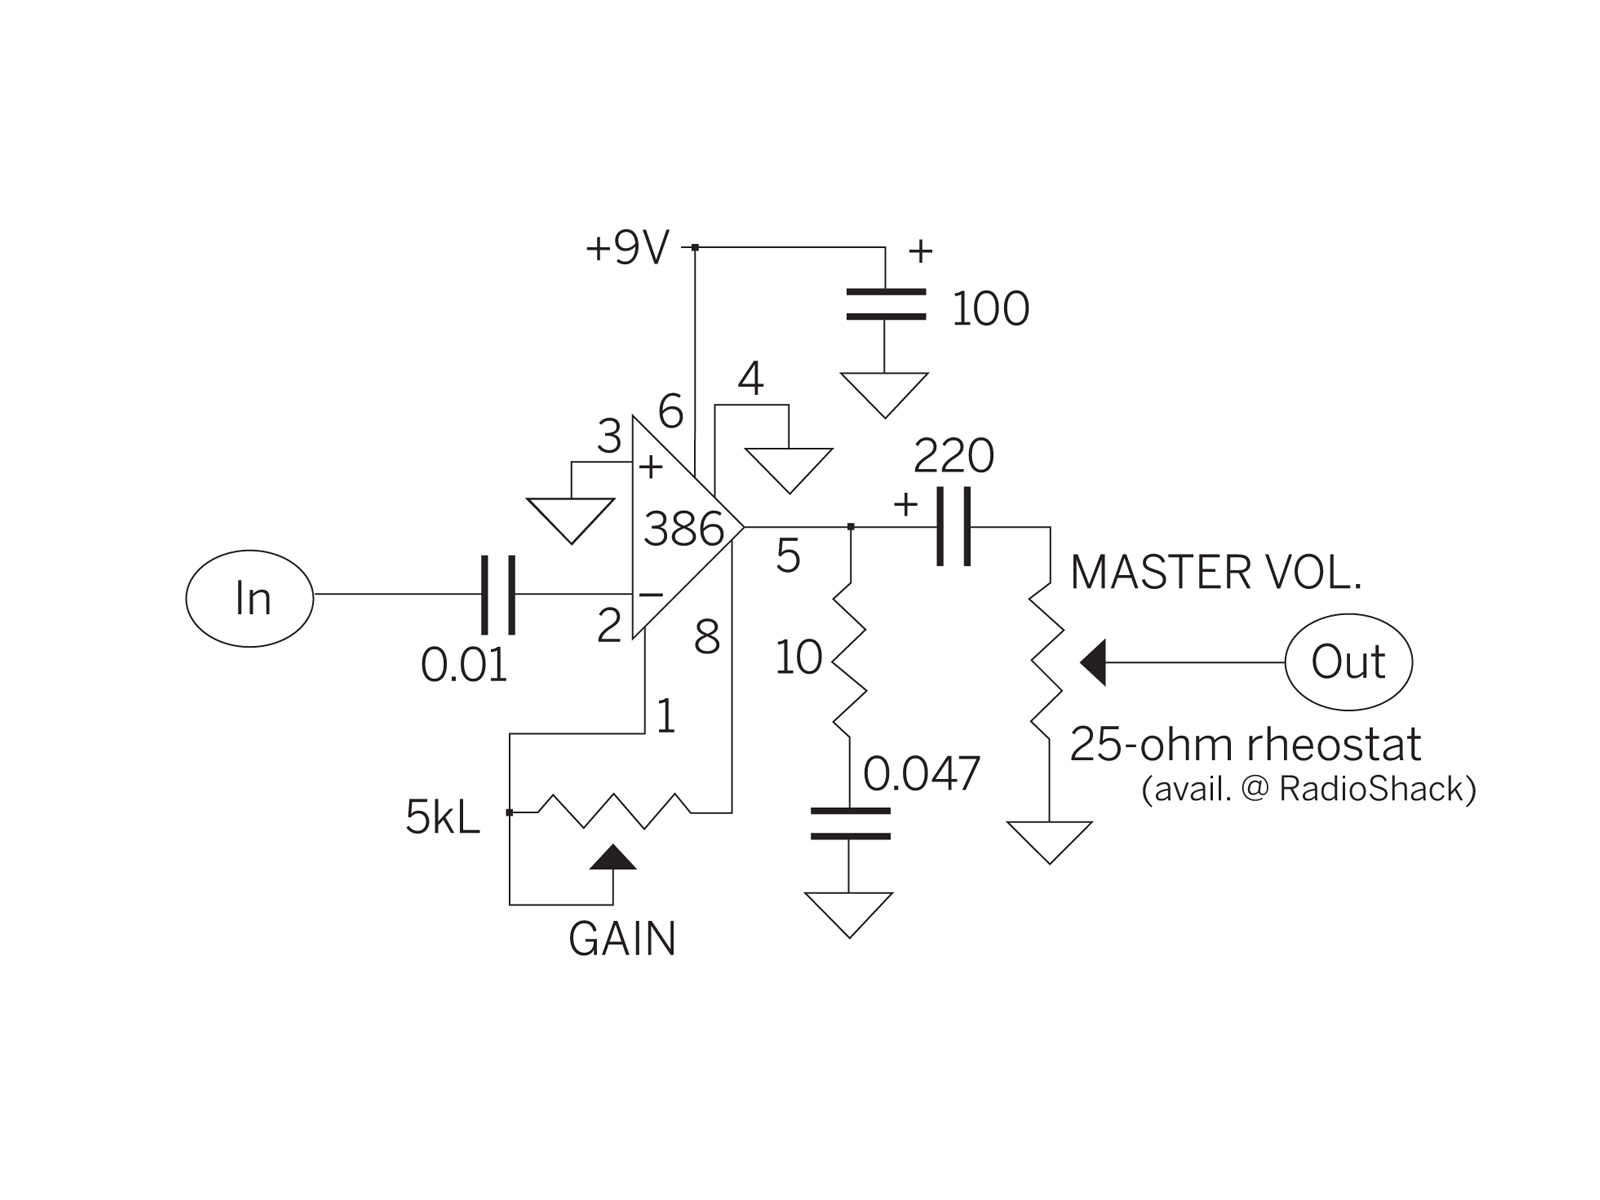 Cbg Amp Diagrams Wiring Diagram Services Guitar Amplifier Cigar Box Mini Lm386 Rh Onlyjus Blogspot Com Stereo